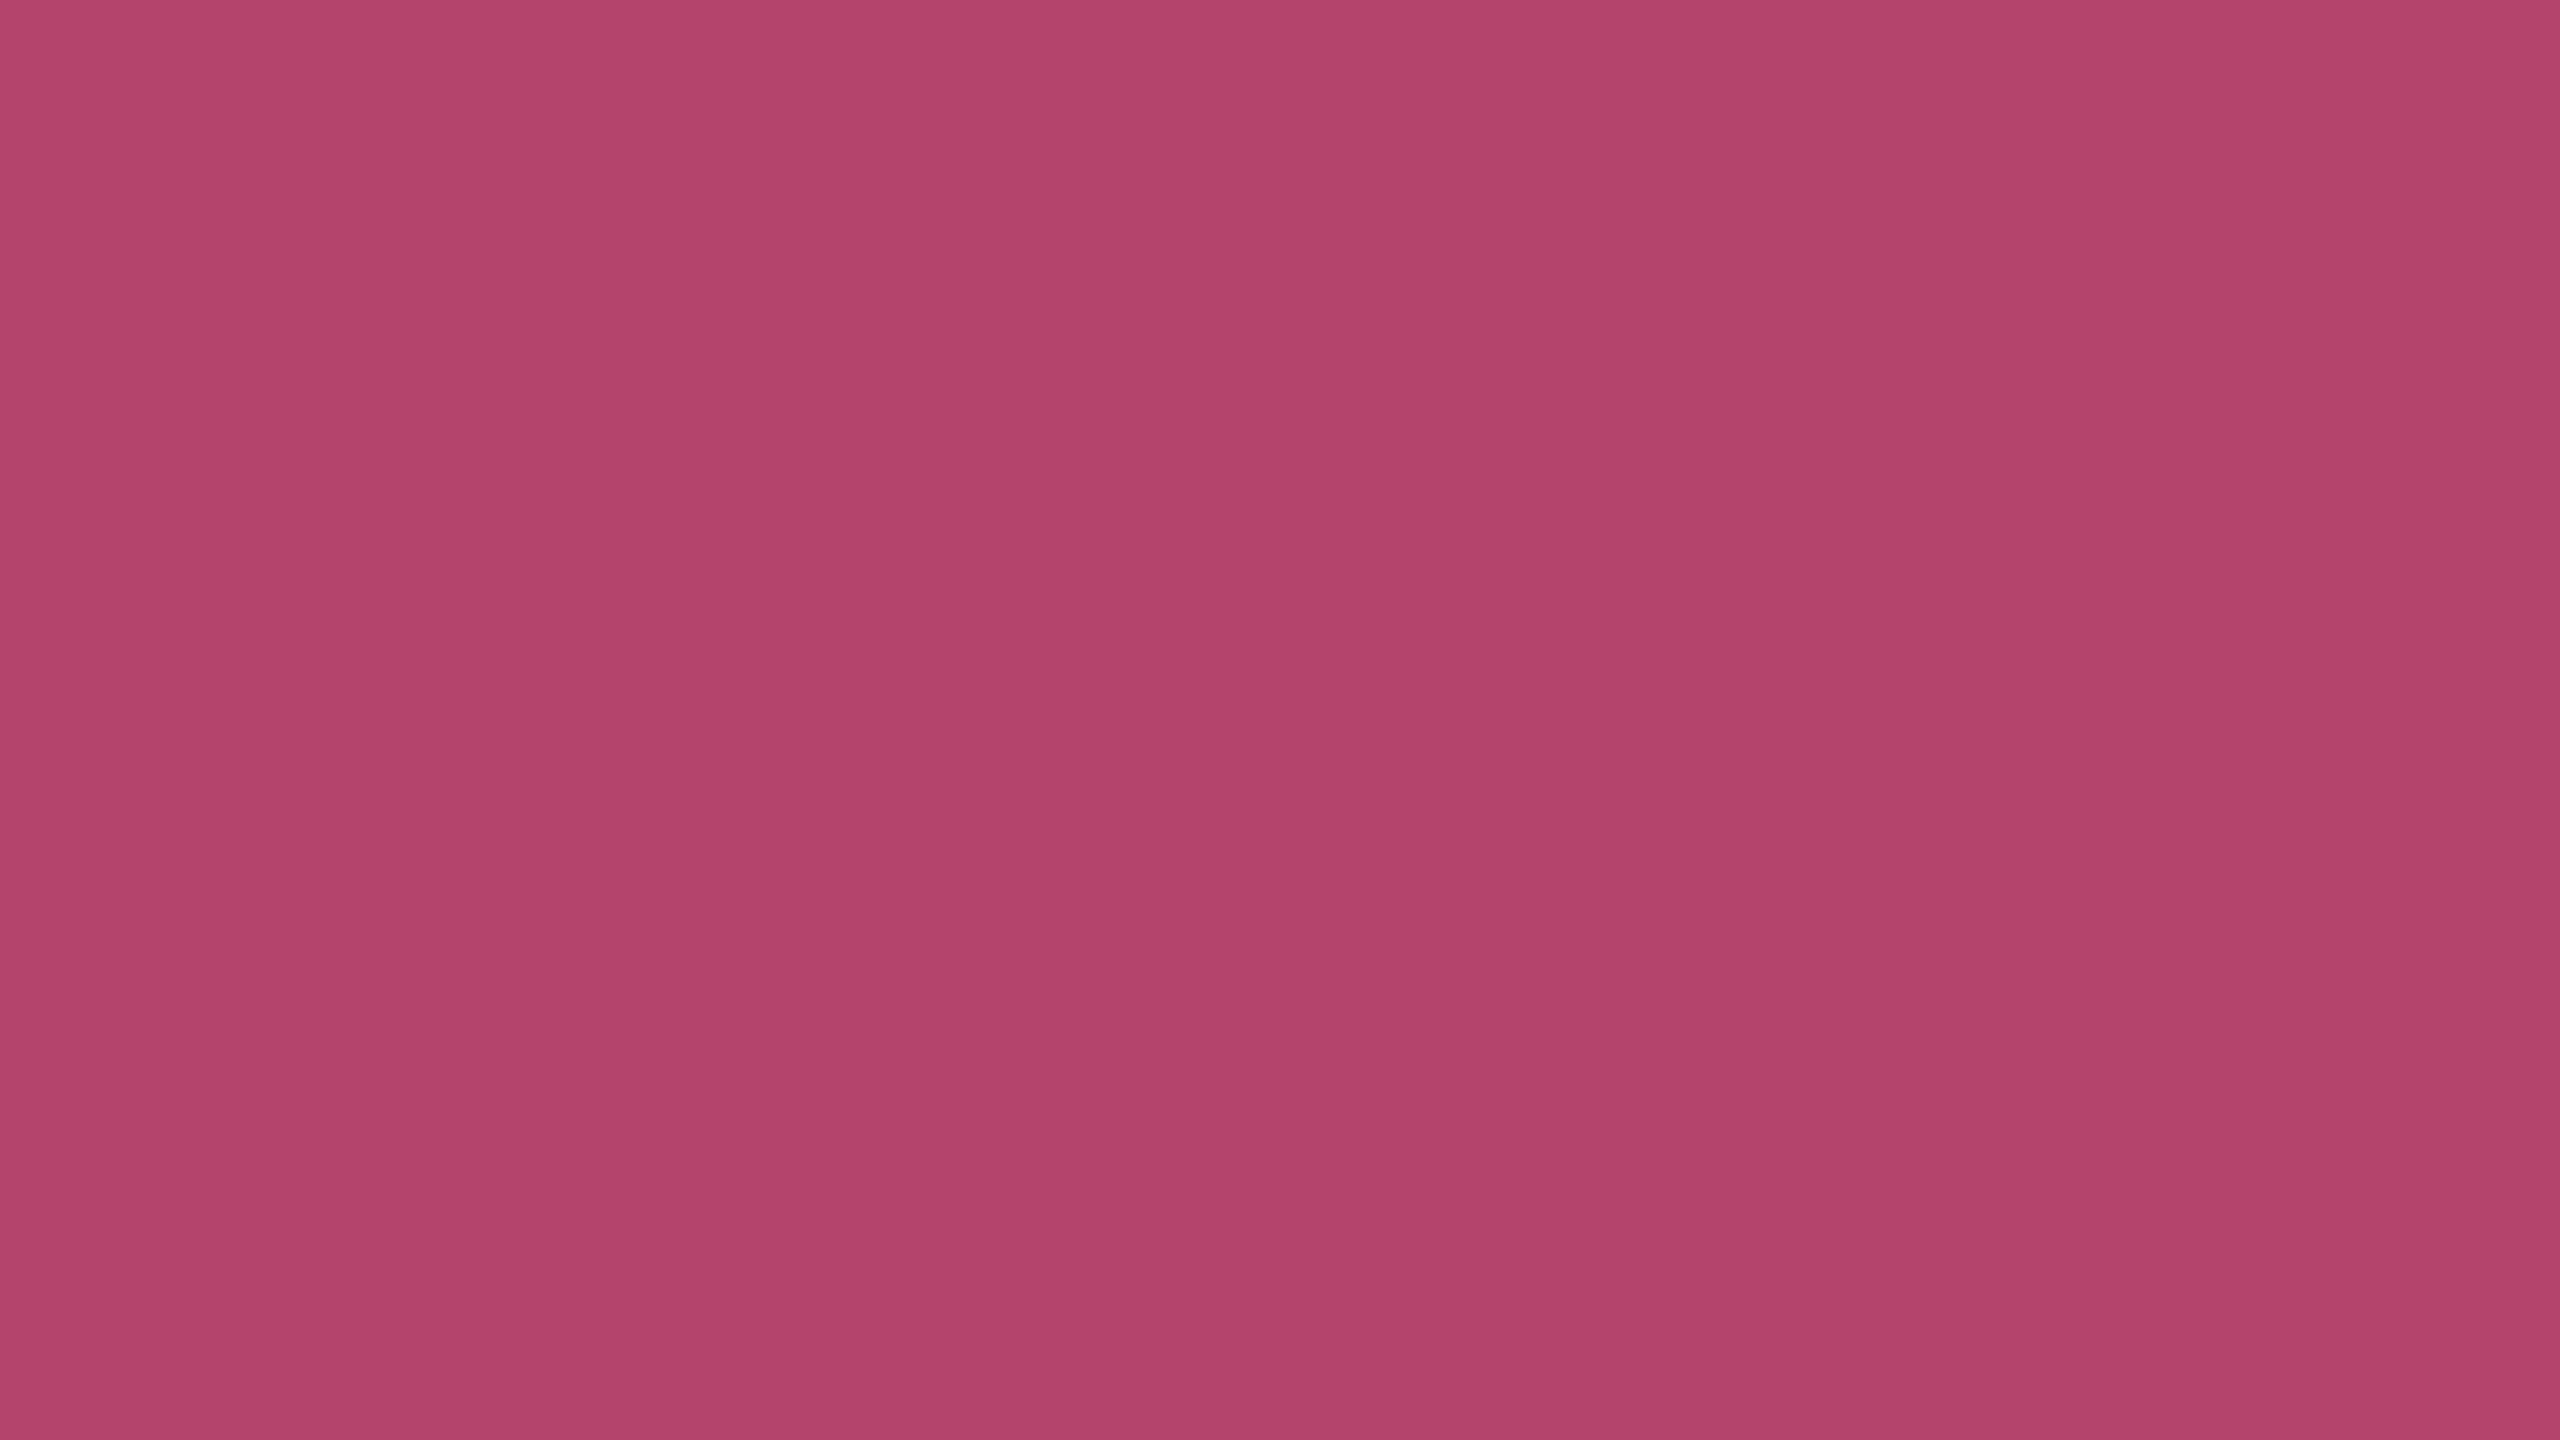 2560x1440 Raspberry Rose Solid Color Background